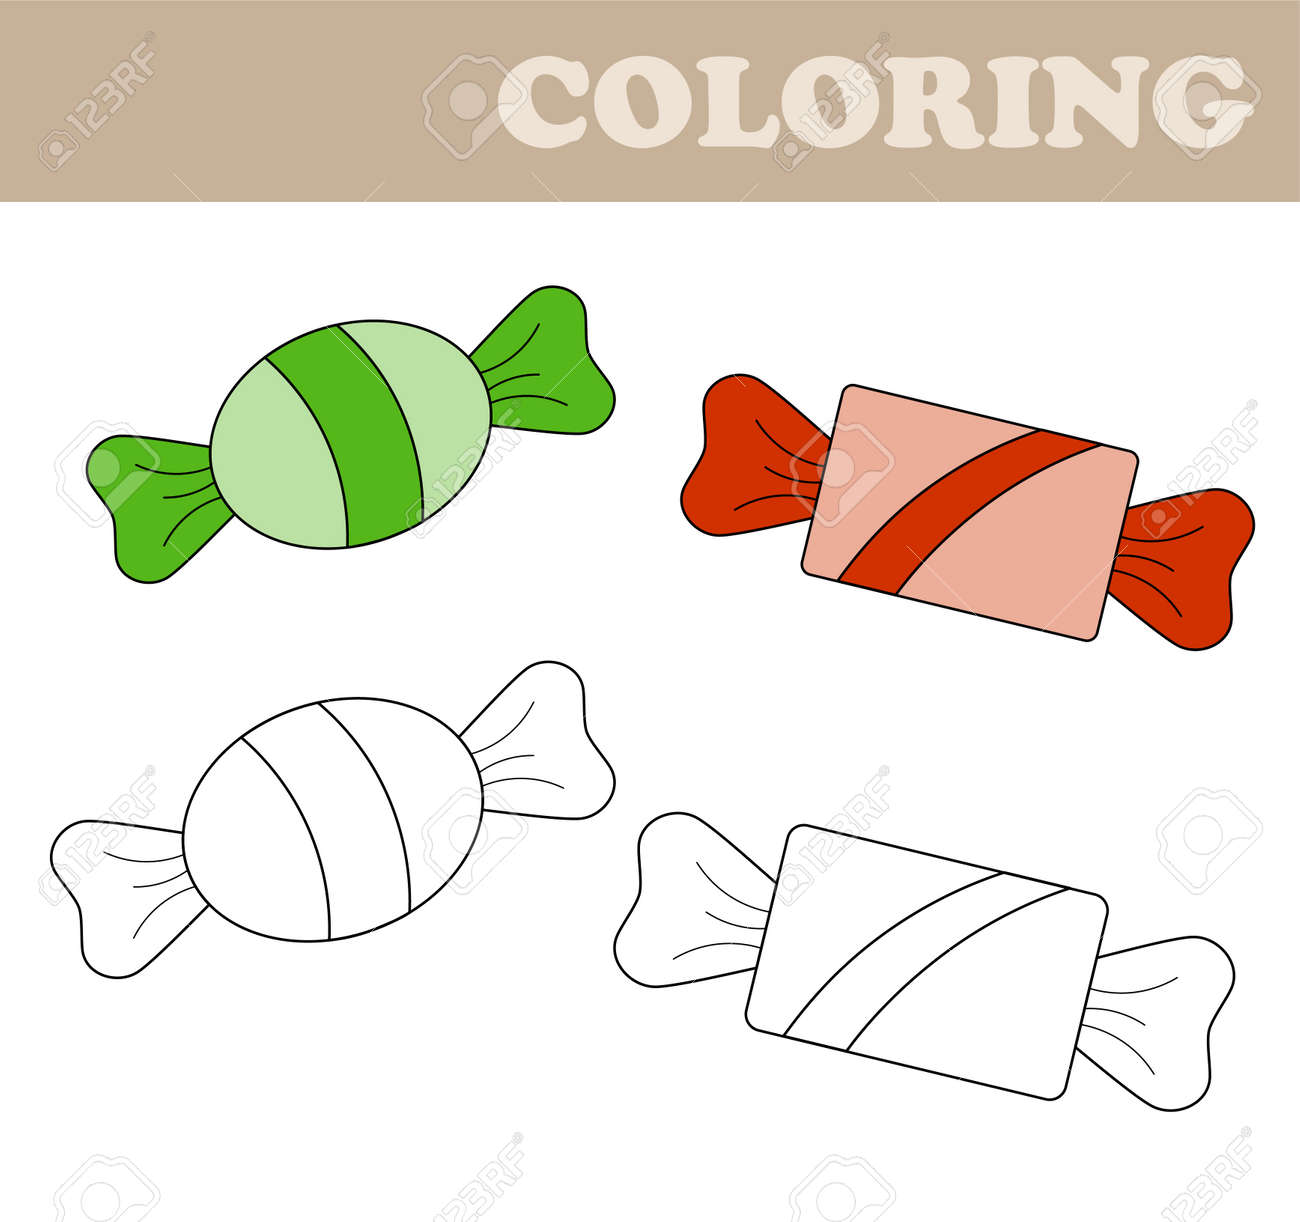 Coloring Page With Sweets Book For Children Educational Childrens Game Drawing Kids